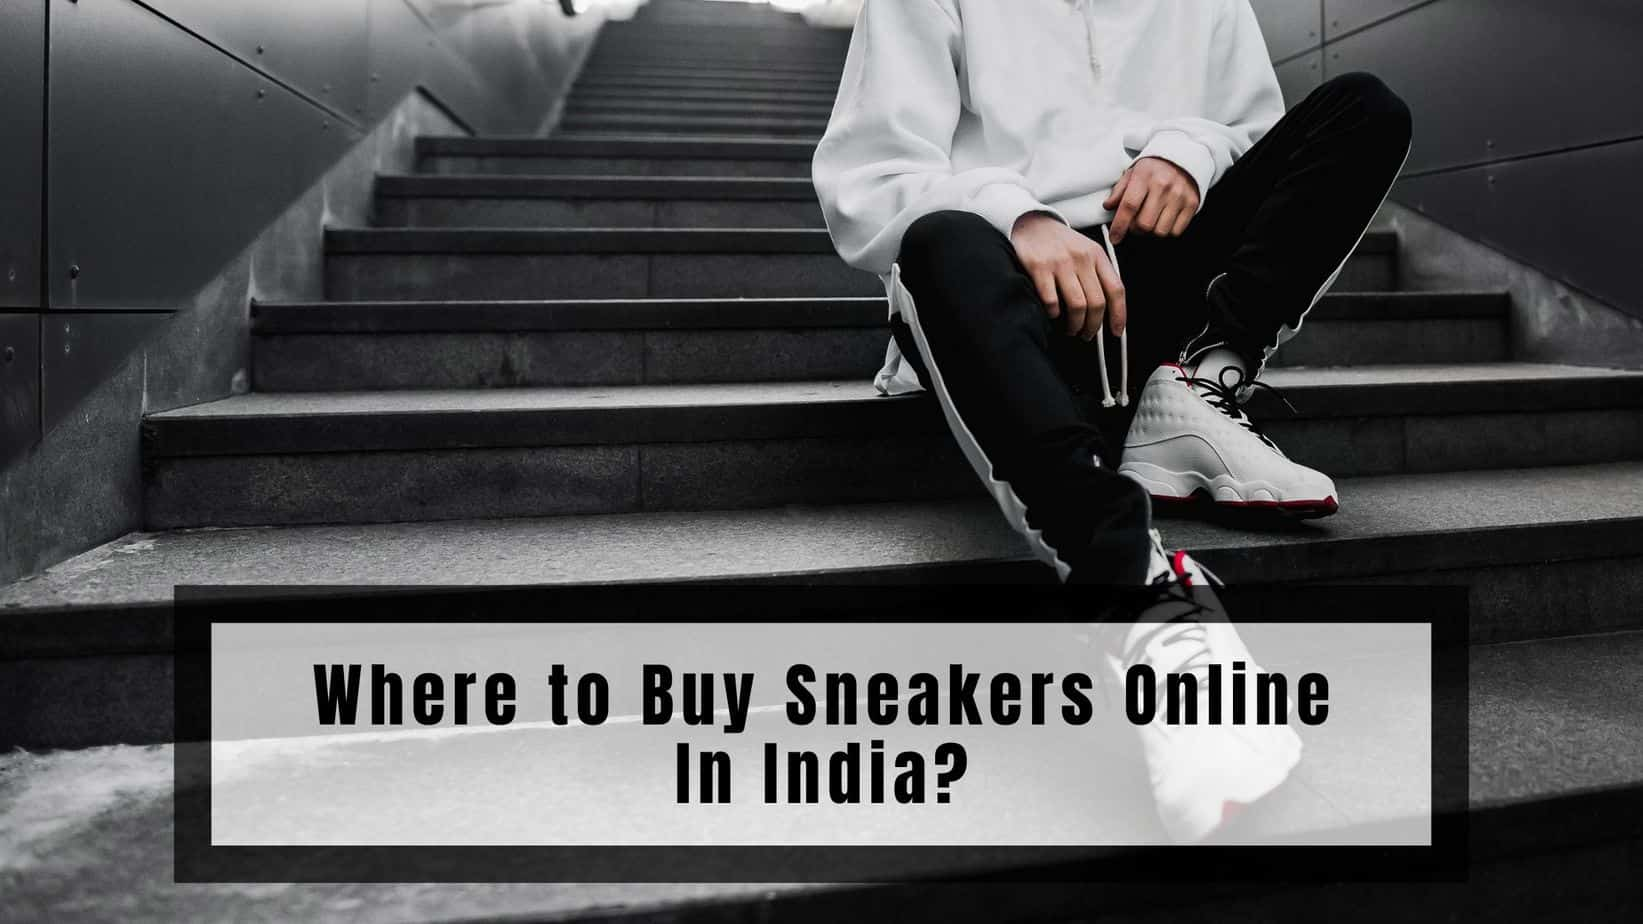 Where to Buy Sneakers Online In India?